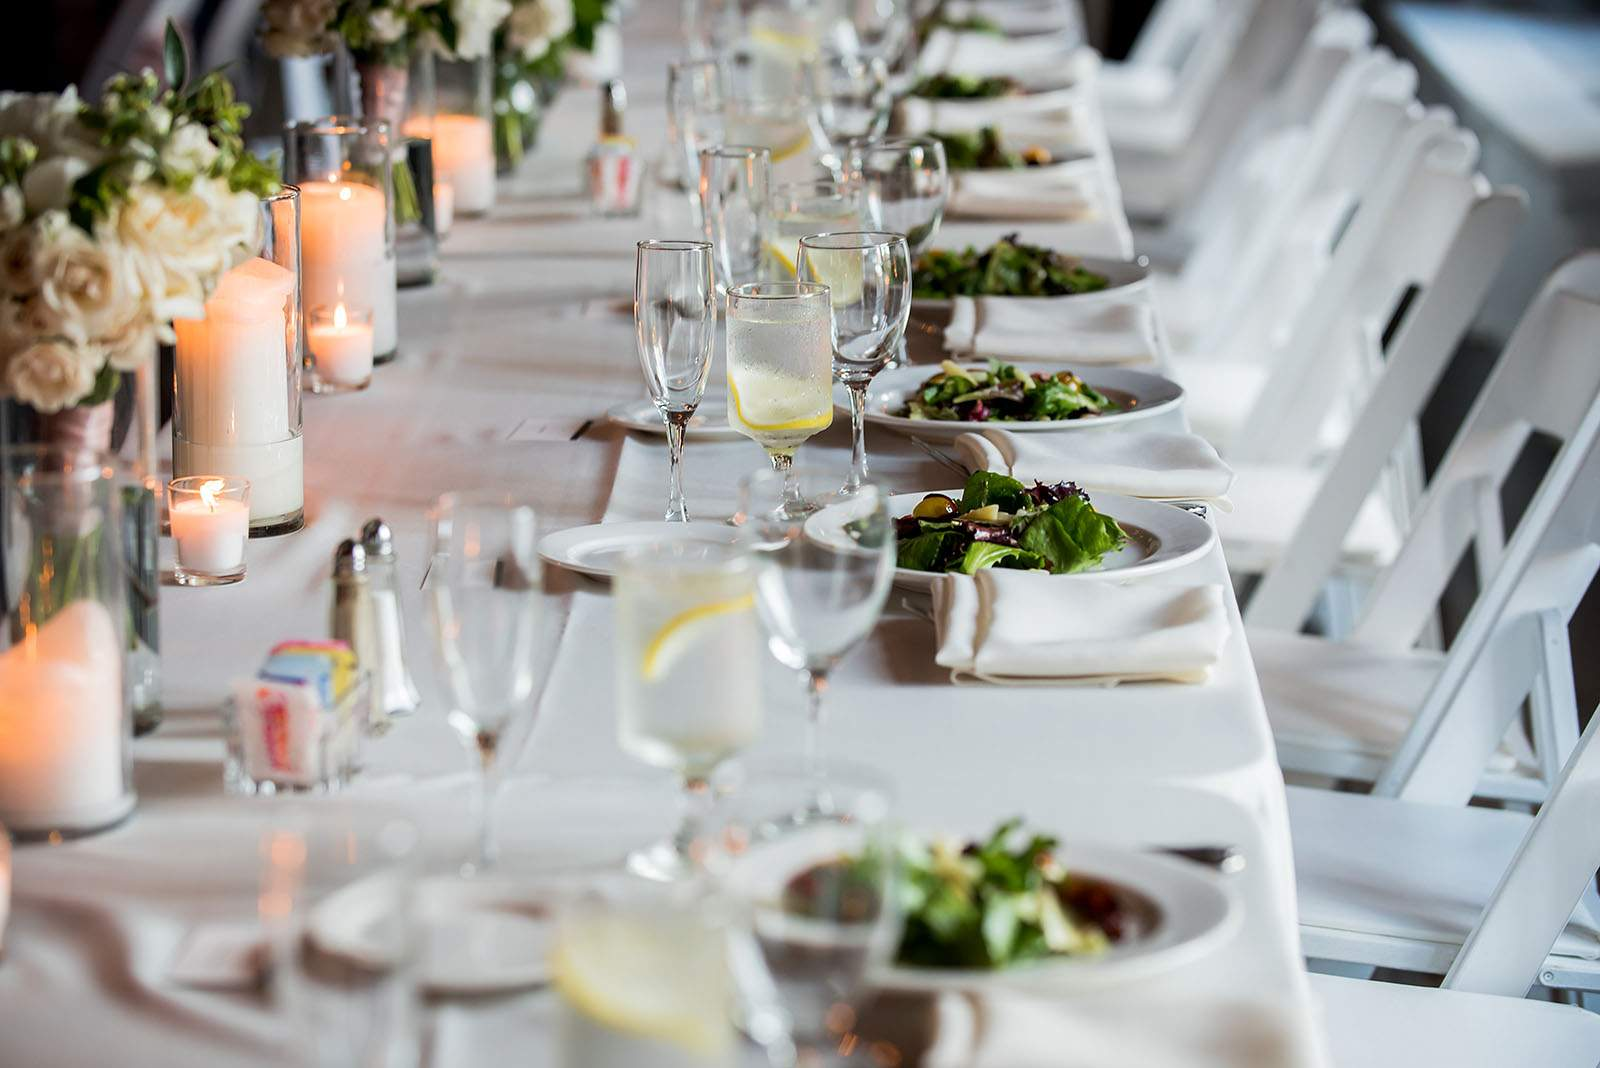 Preferred Caterers